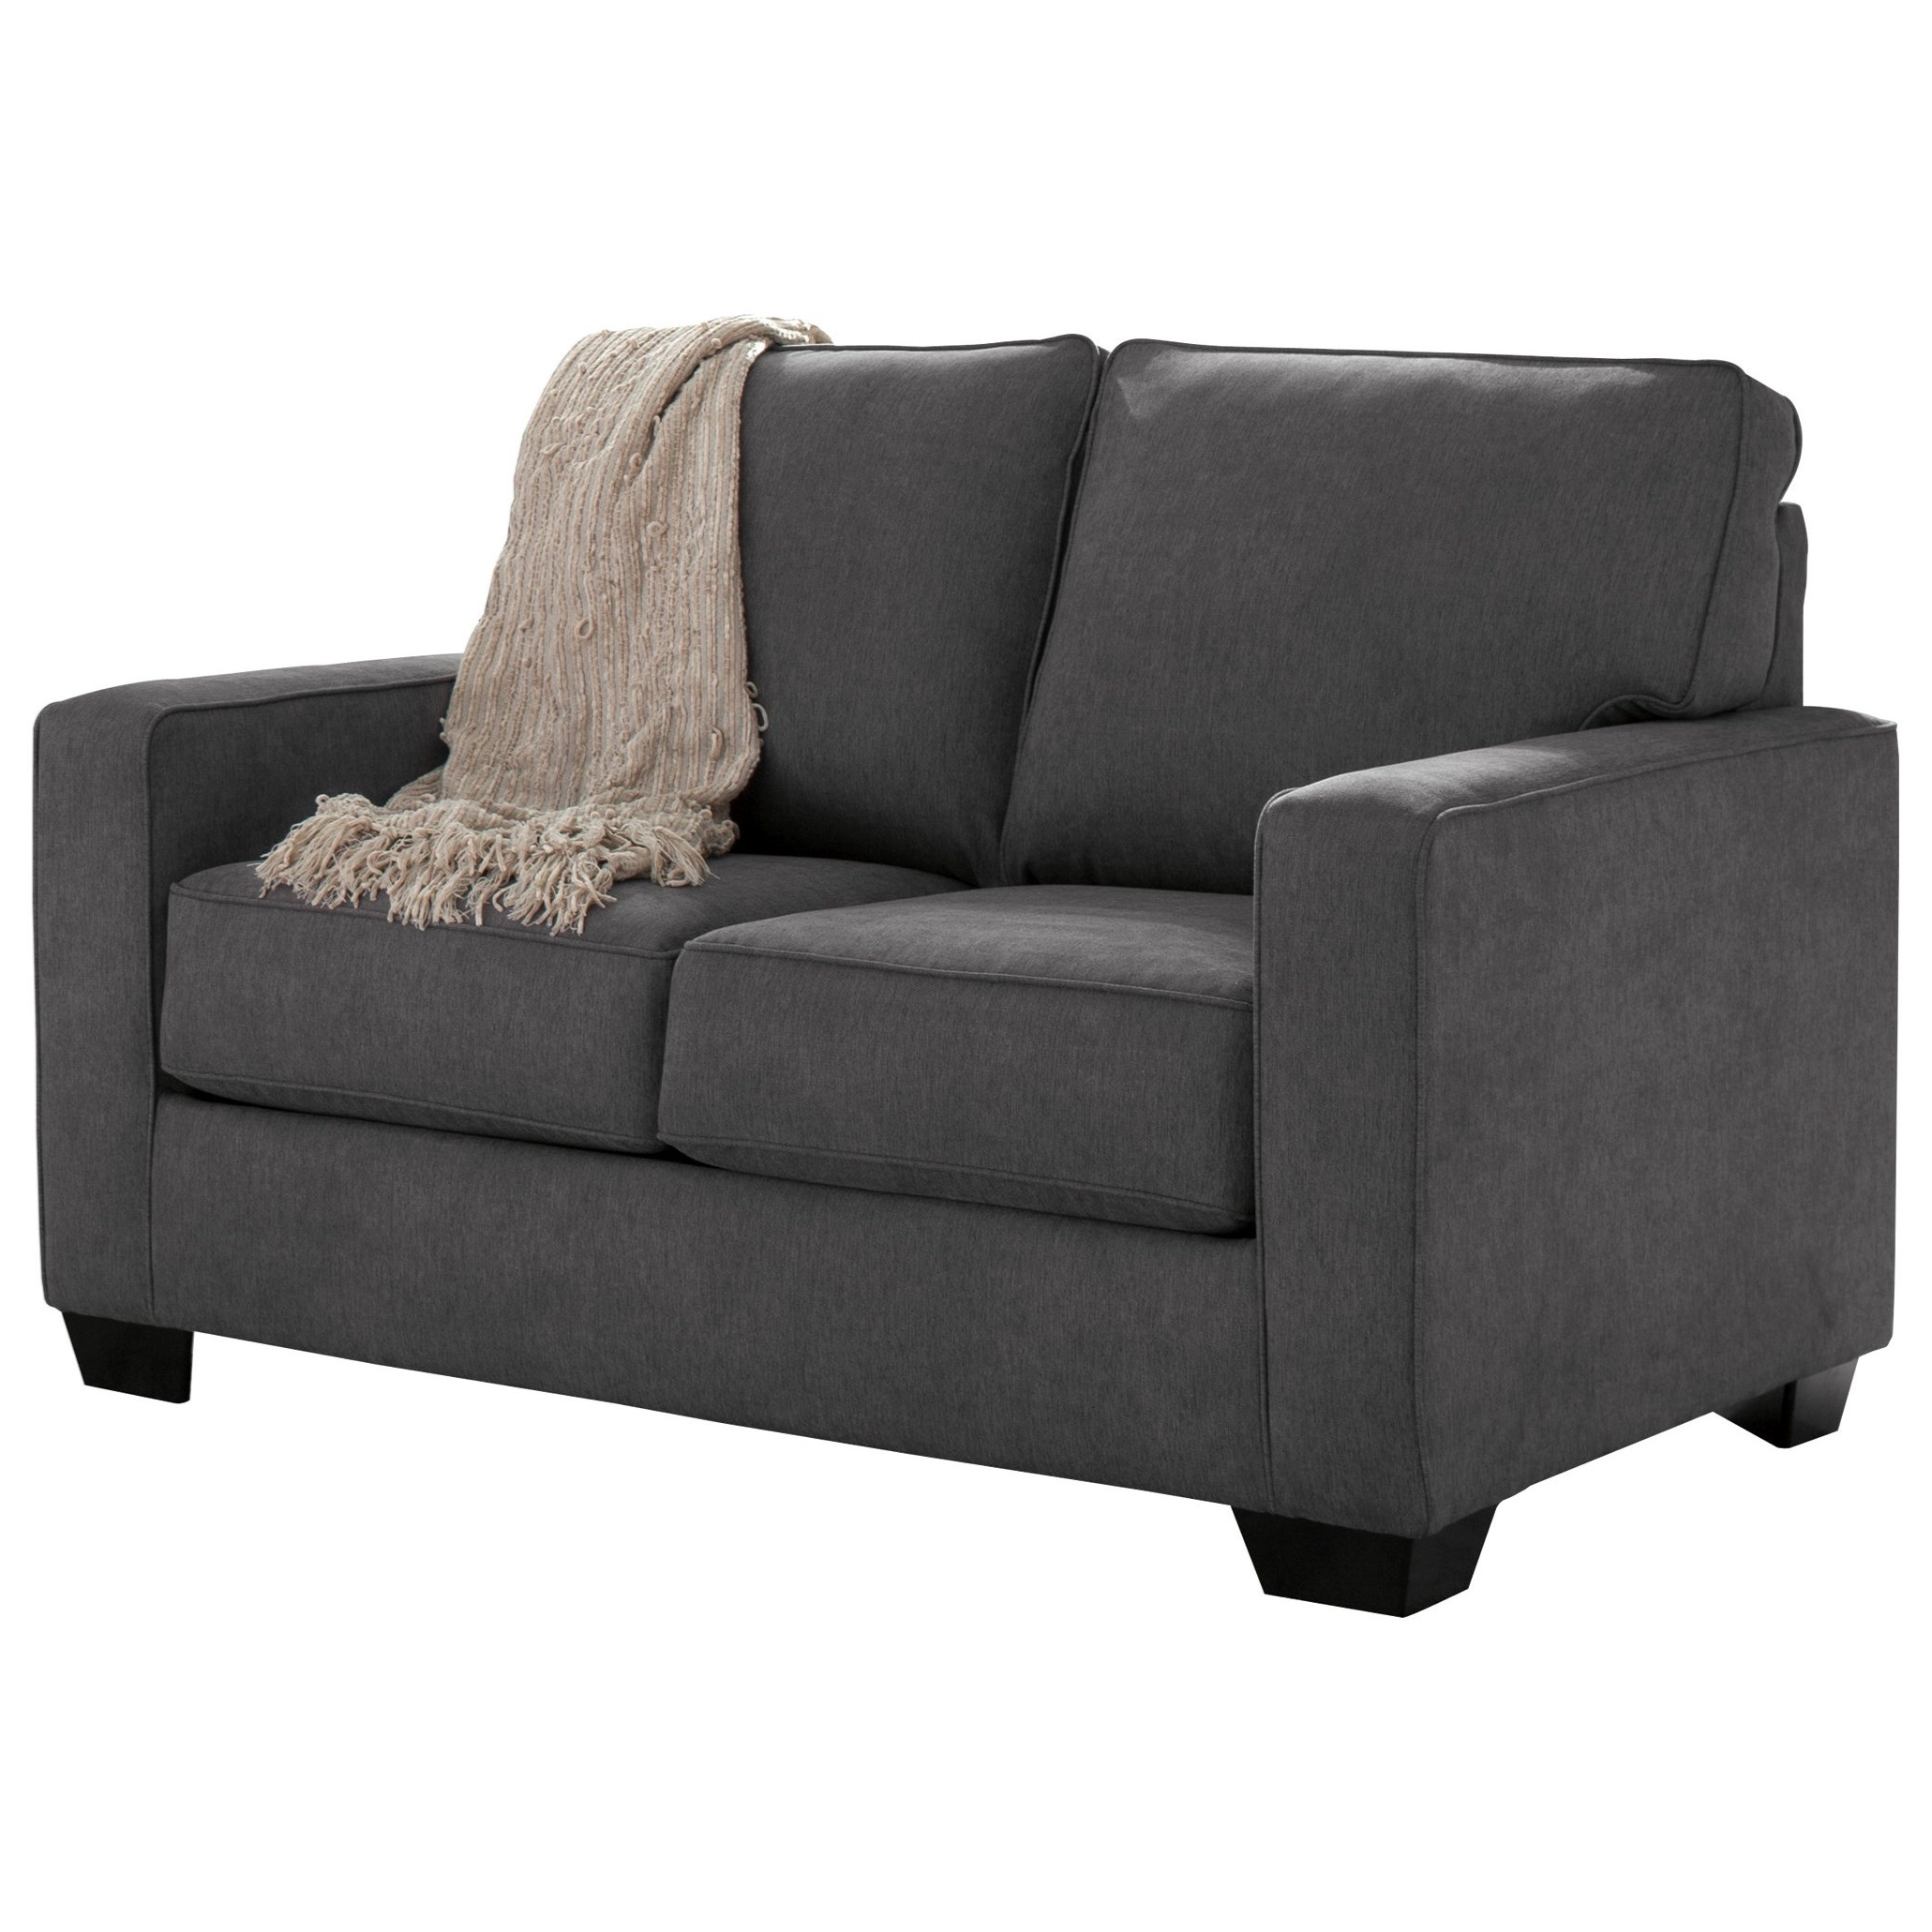 Signature Designashley Zeb 3590137 Twin Sofa Sleeper With With Current Twin Sleeper Sofa Chairs (View 17 of 20)